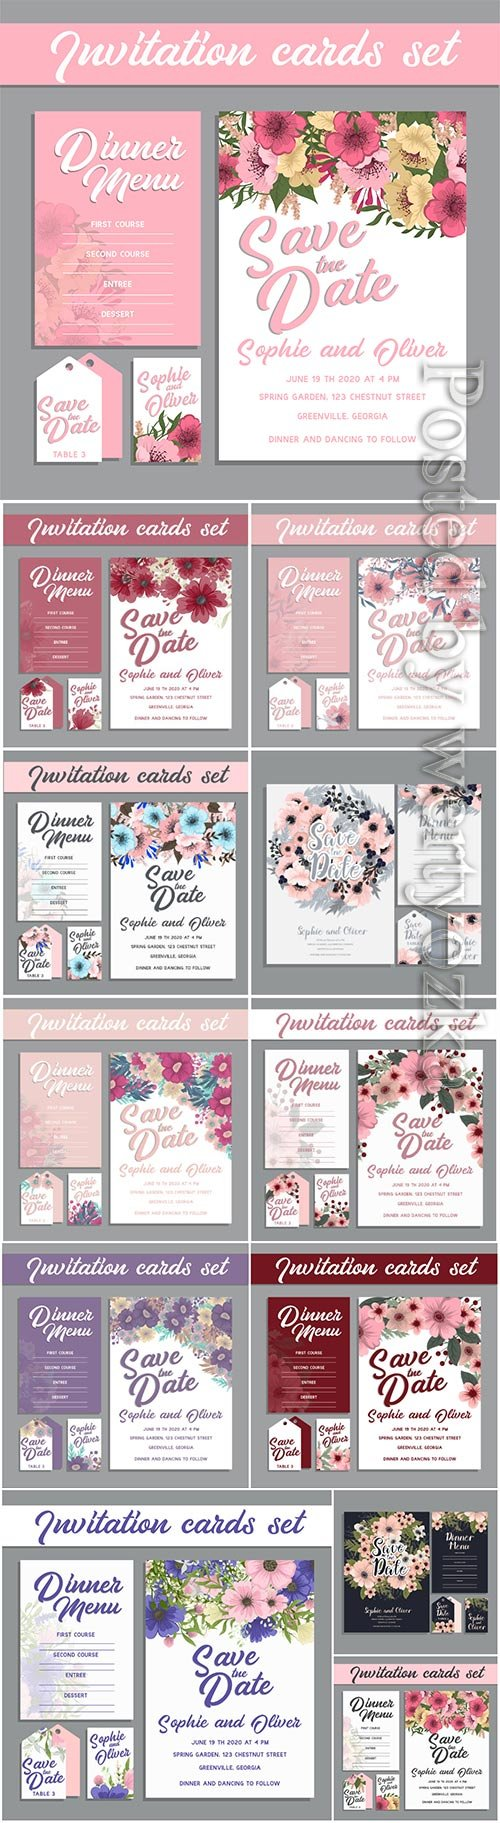 Wedding invitation card suite with flowers, template vector illustration